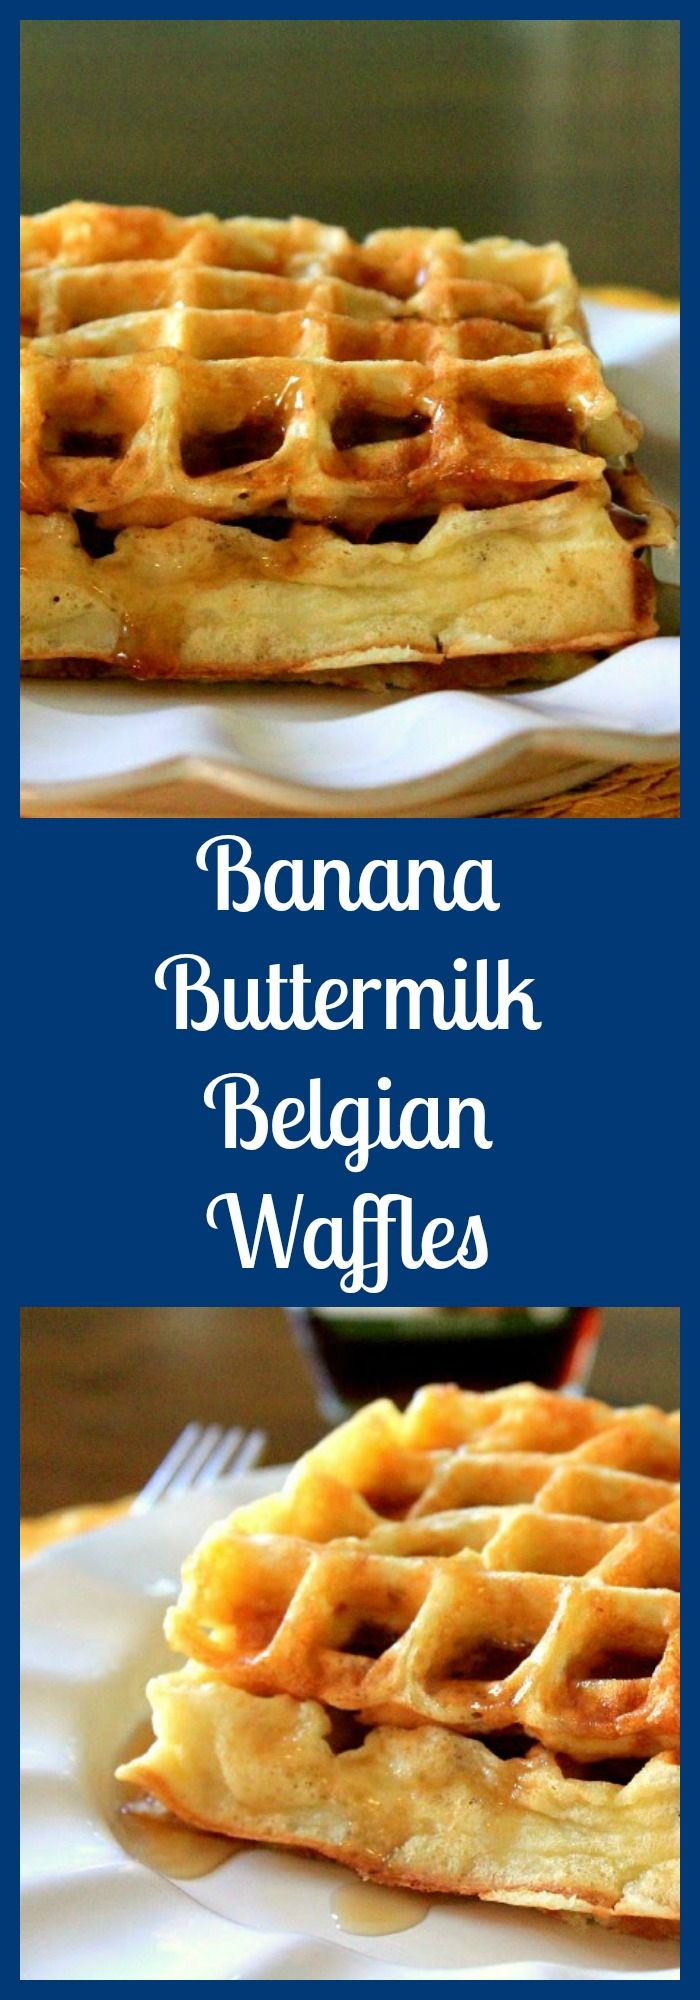 Light and fluffy Belgian waffles filled with bananas, perfect for breakfast any day of the week! From @sarahb73